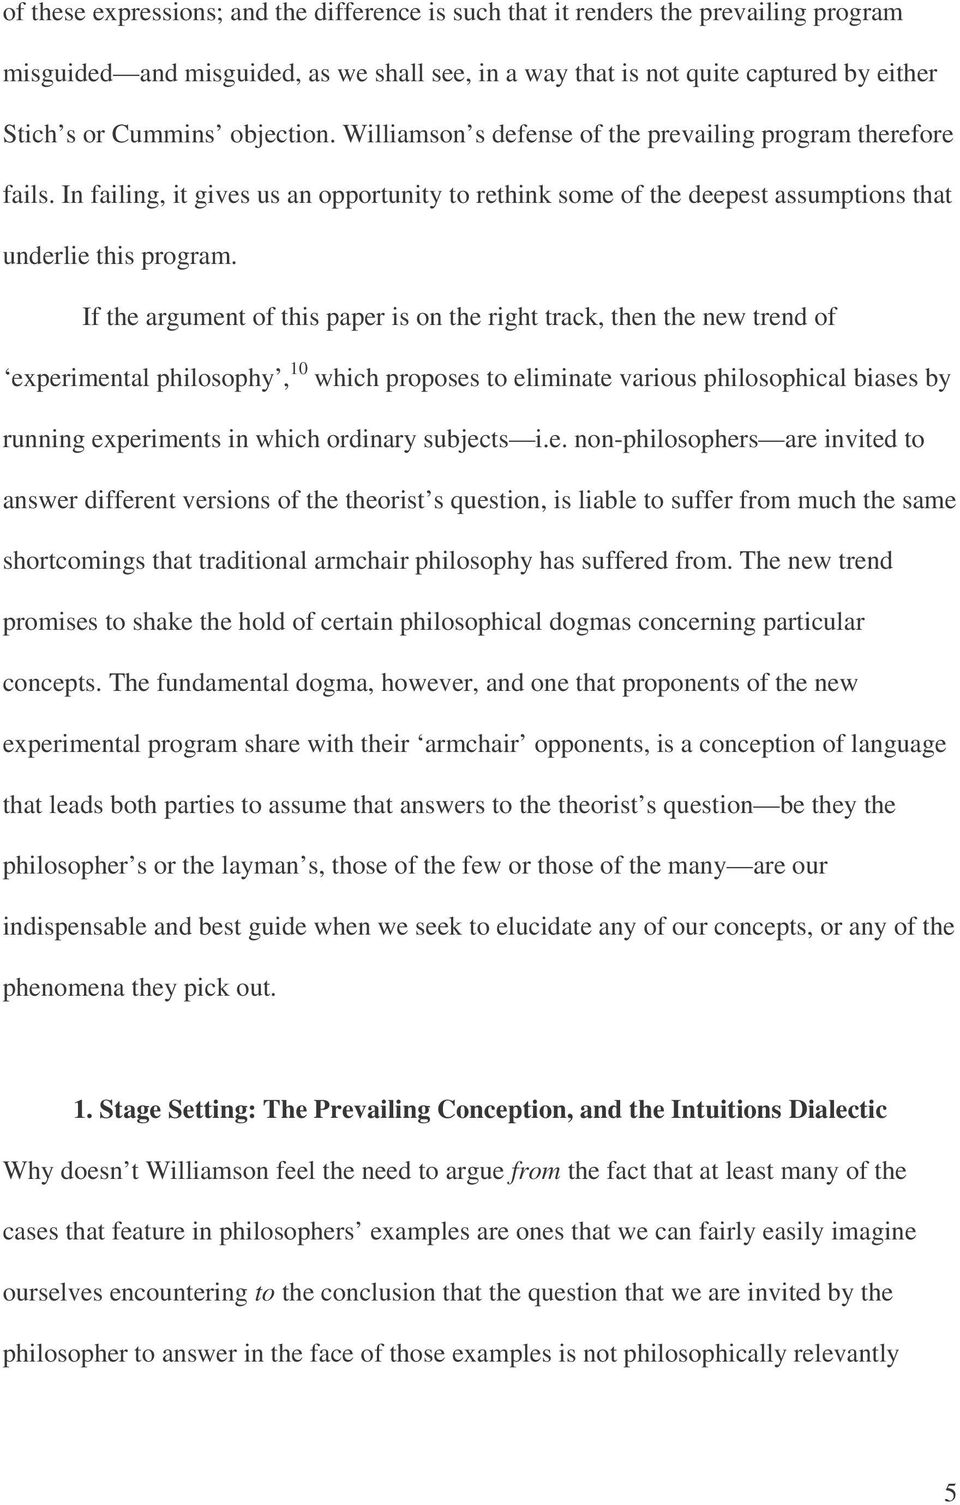 If the argument of this paper is on the right track, then the new trend of experimental philosophy, 10 which proposes to eliminate various philosophical biases by running experiments in which